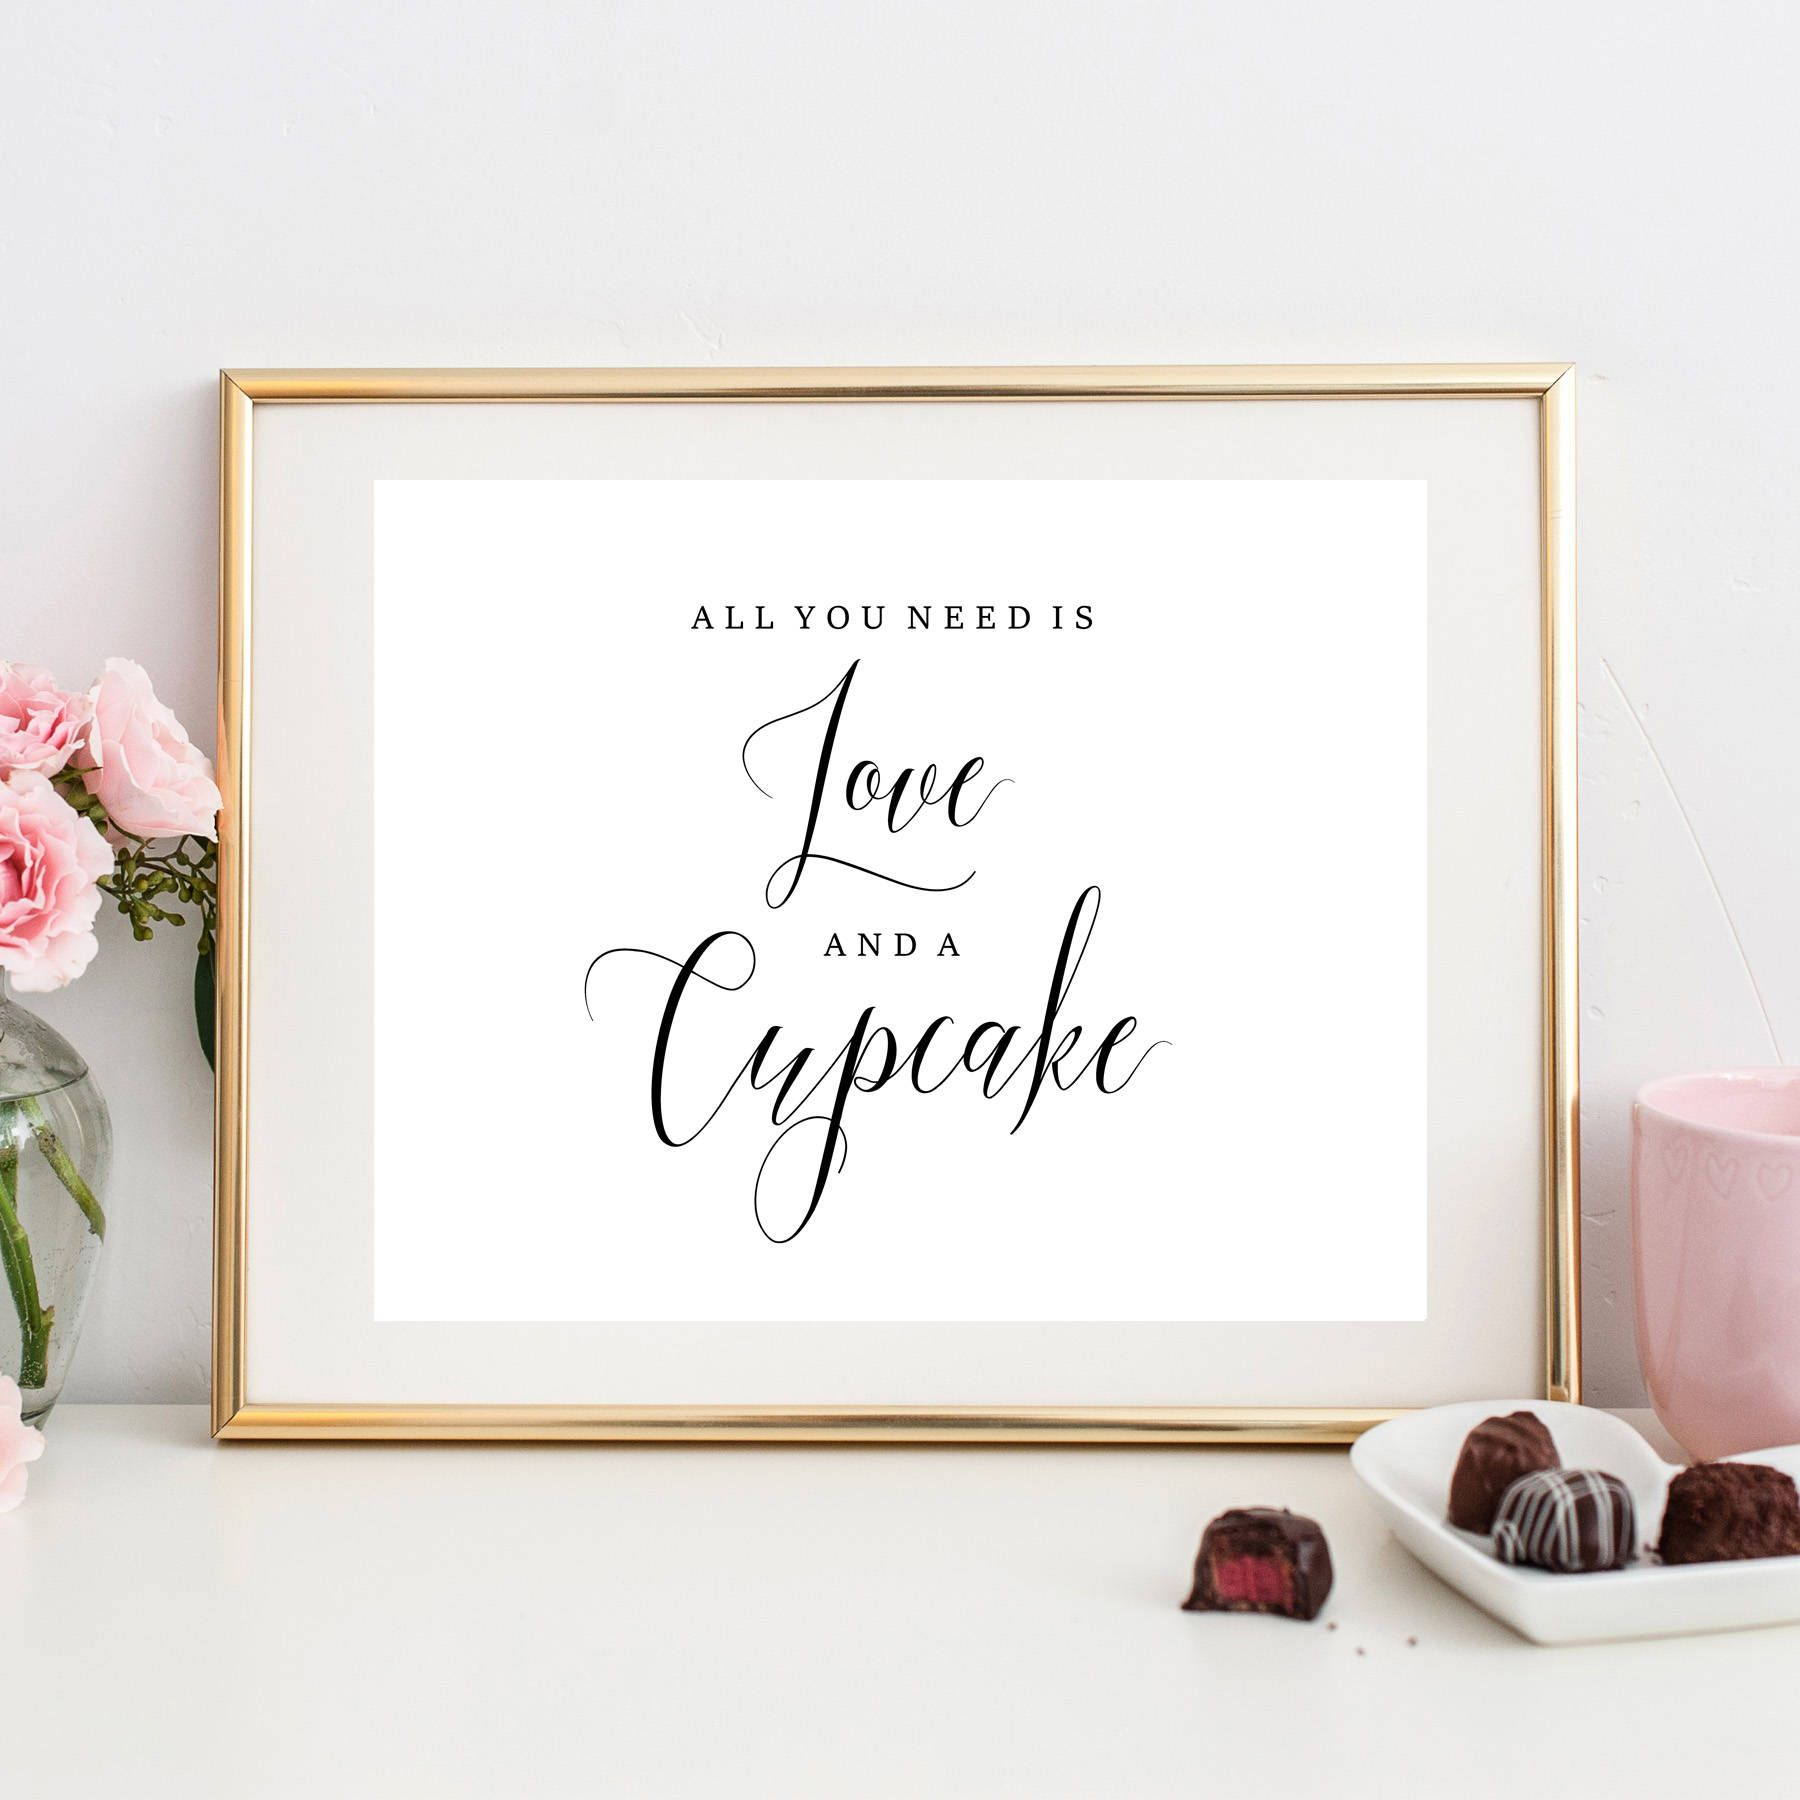 All you need is love and a cupcake, printable, instant download ...